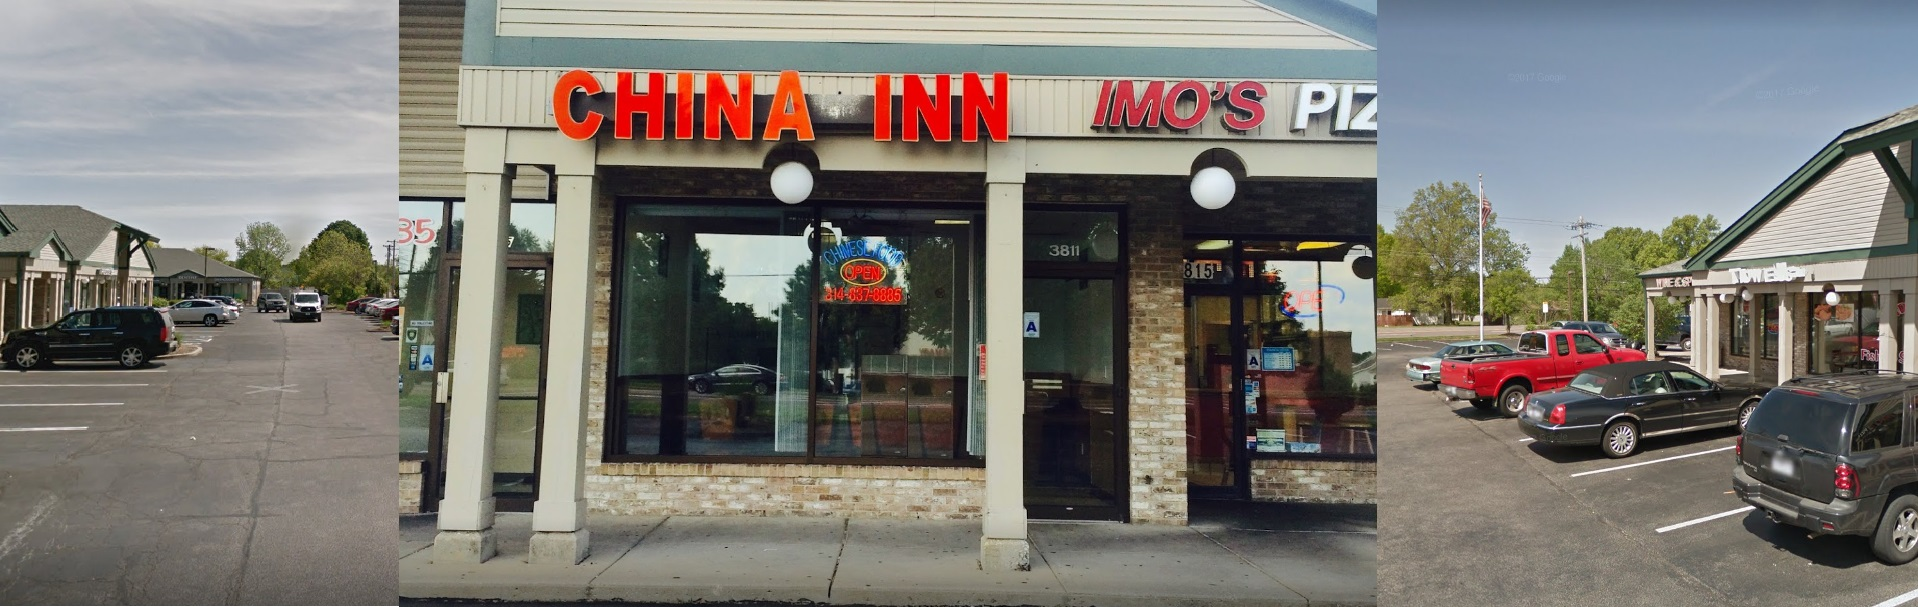 Your favorite Chinese food at China Inn Restaurant Chinese